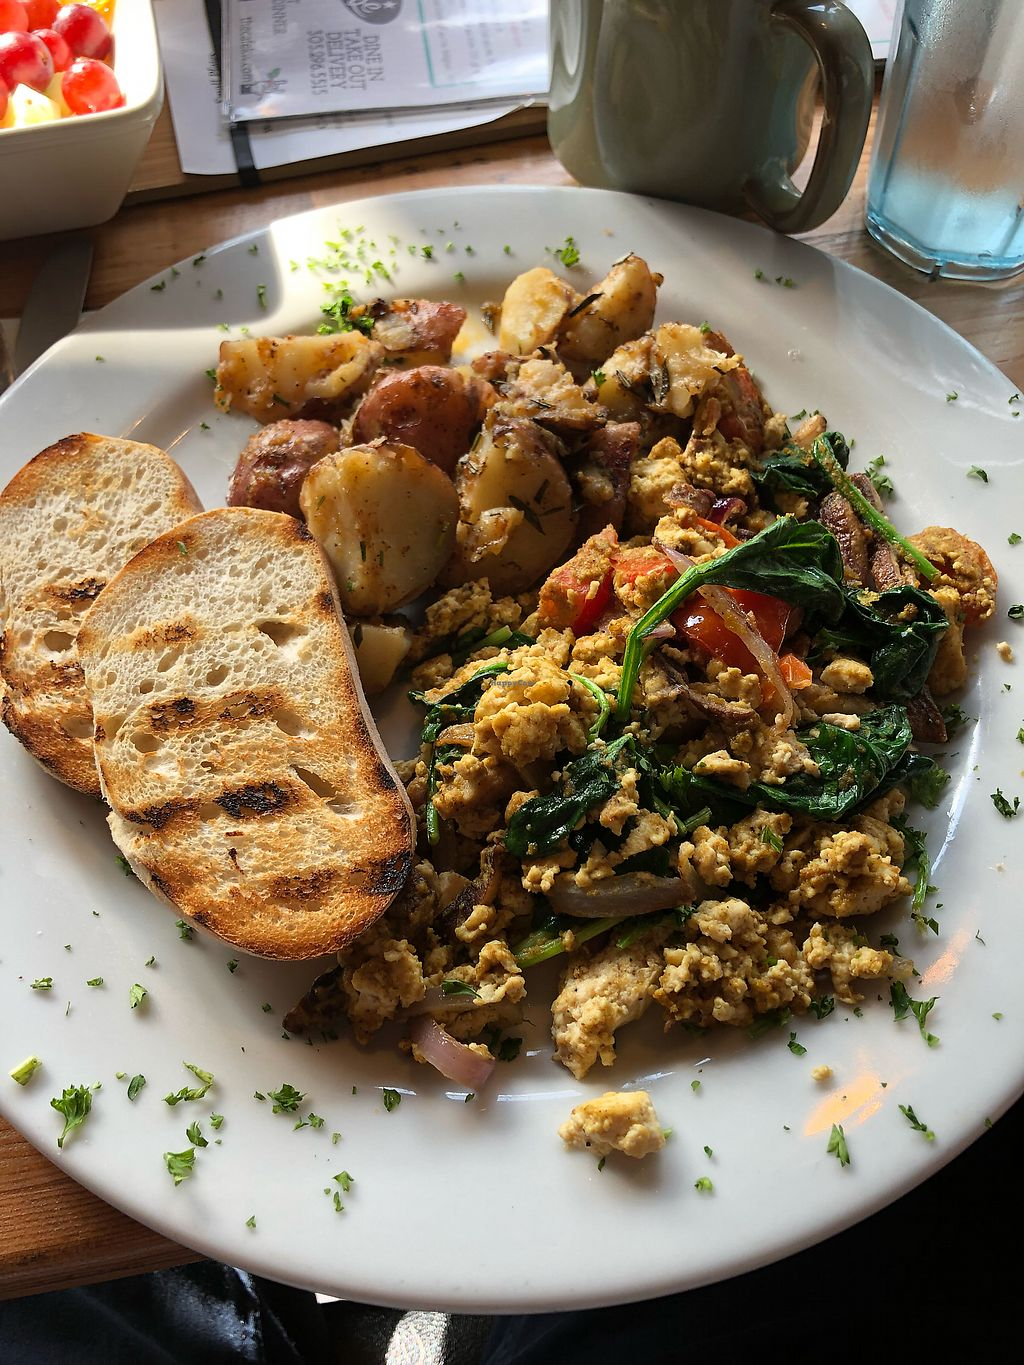 """Photo of The Cafe  by <a href=""""/members/profile/thirty3n1third"""">thirty3n1third</a> <br/>Tofu Scramble <br/> March 18, 2018  - <a href='/contact/abuse/image/3033/372653'>Report</a>"""